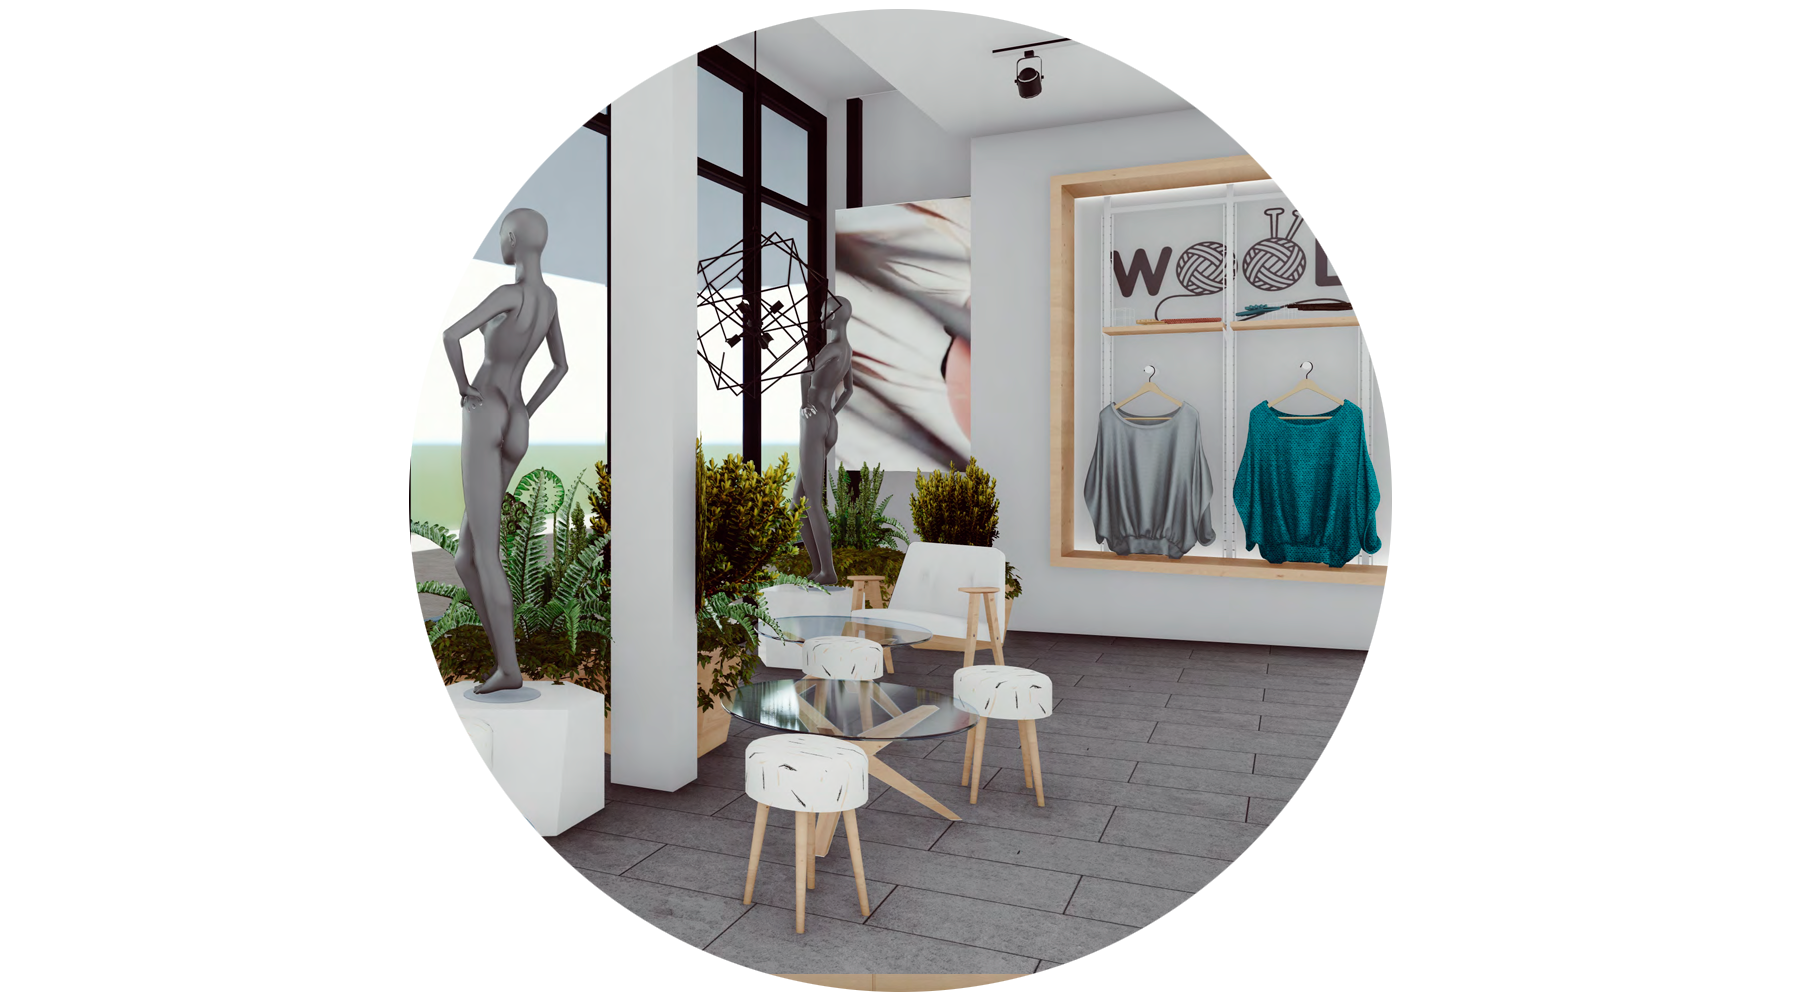 - Fully-Featured StoresOur comfortable and inviting stores create the perfect environment to showcase your brand and products. Stores feature a good lighting, dressing rooms, seating, and even a café at the center.